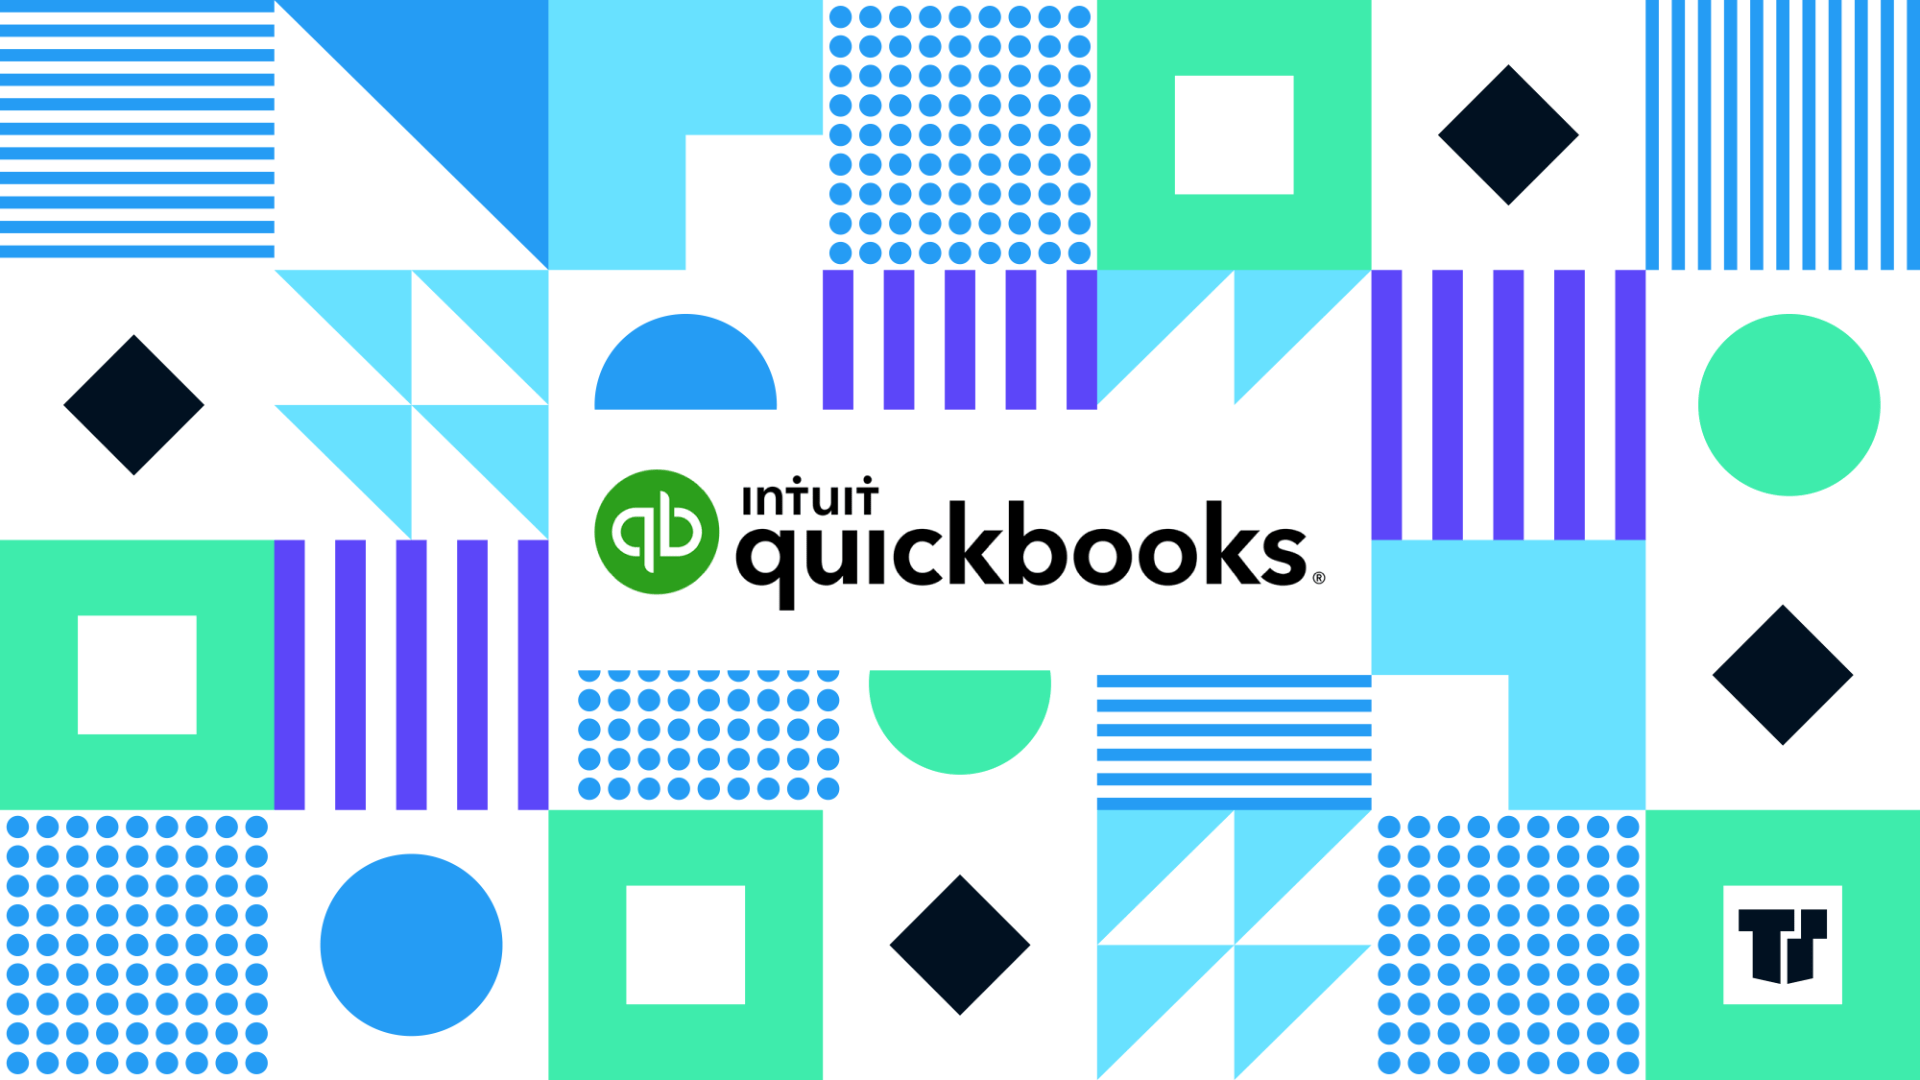 Top Features of Quickbooks 2019 cover image